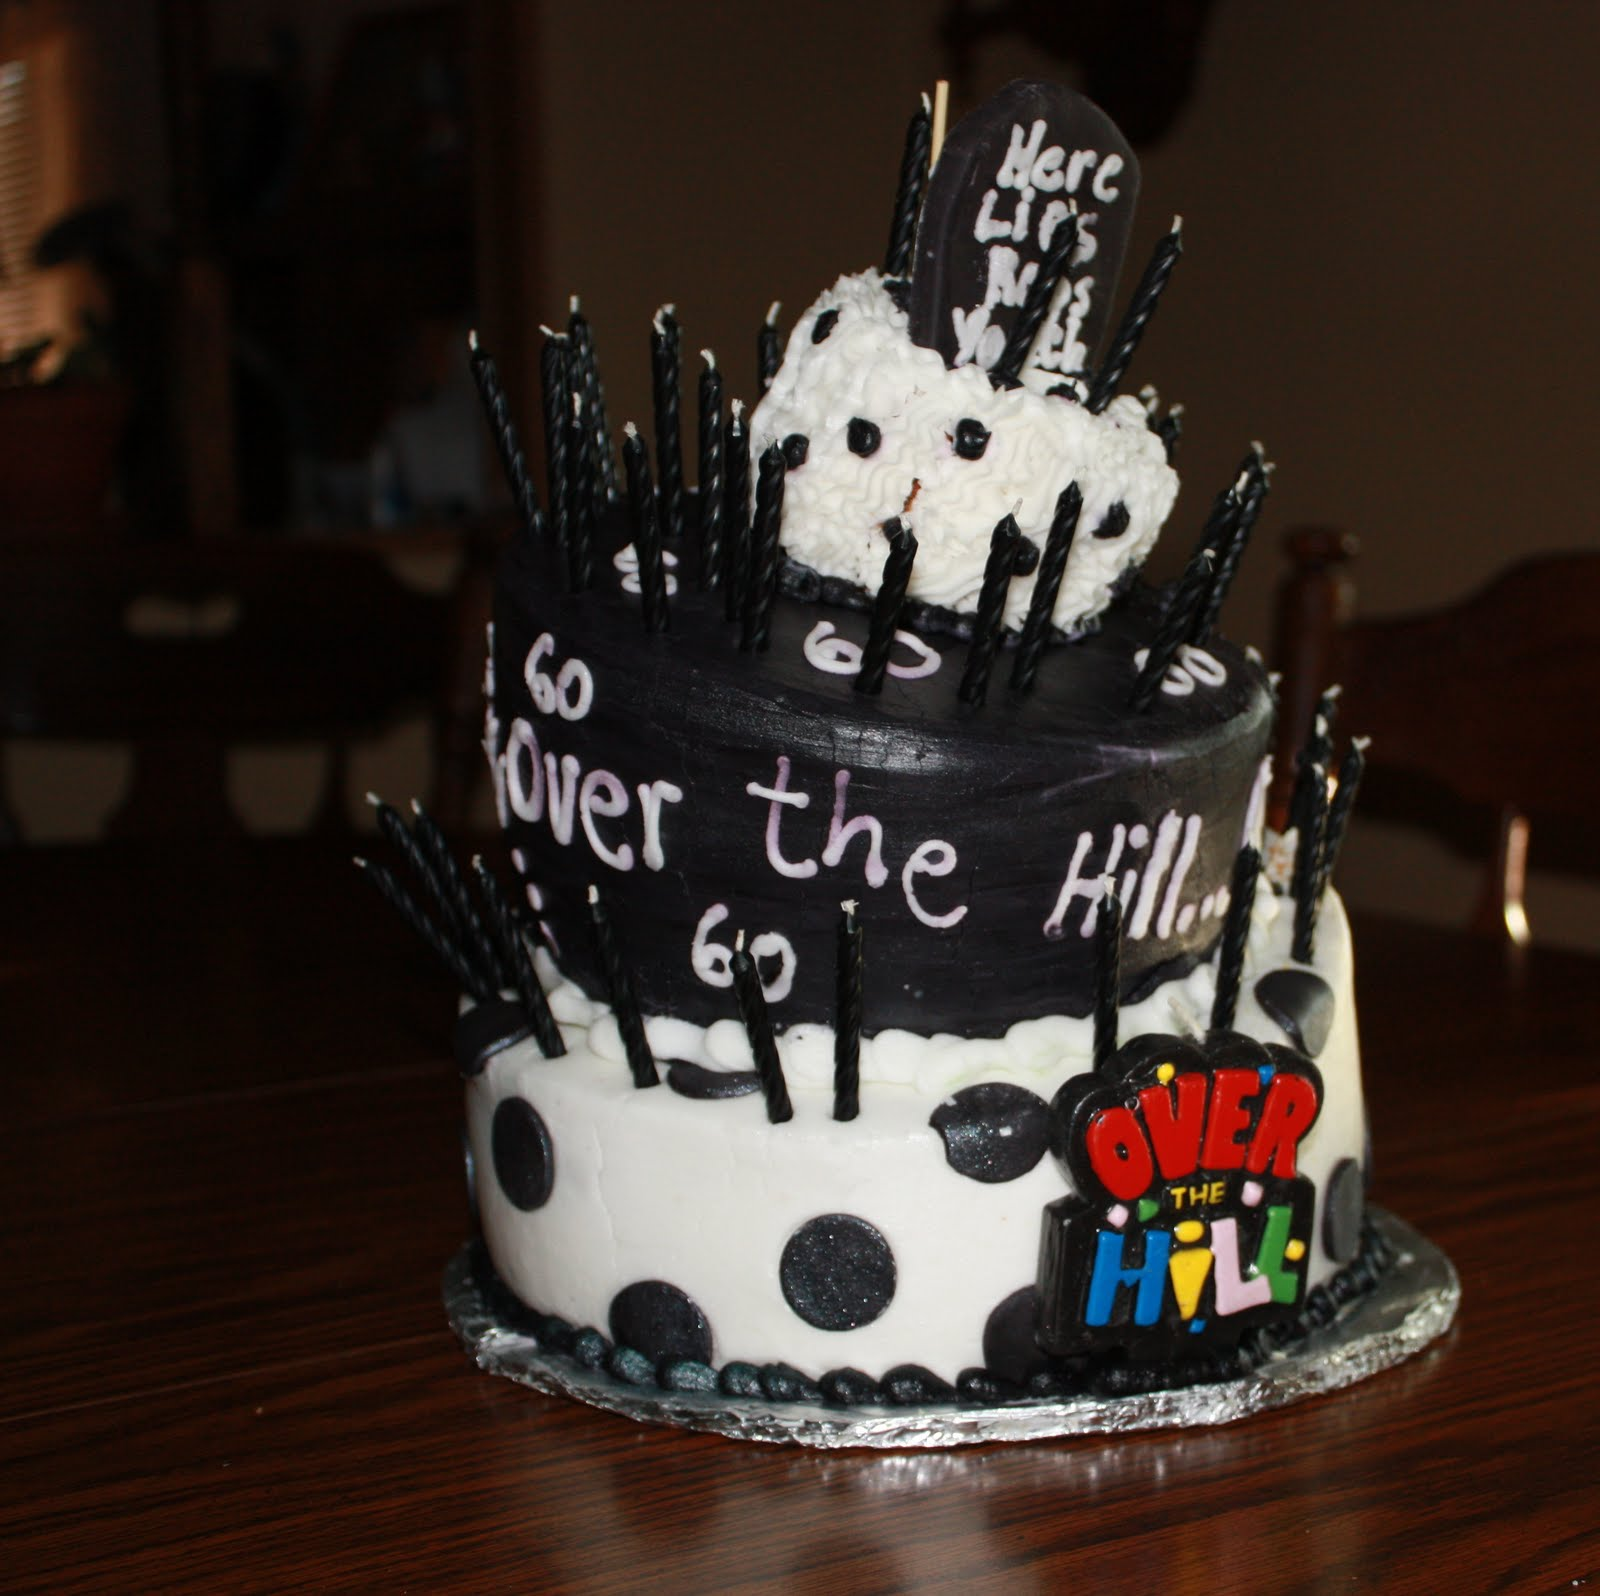 50th Birthday Clip Art Over The Hill Hill cake with black icing and